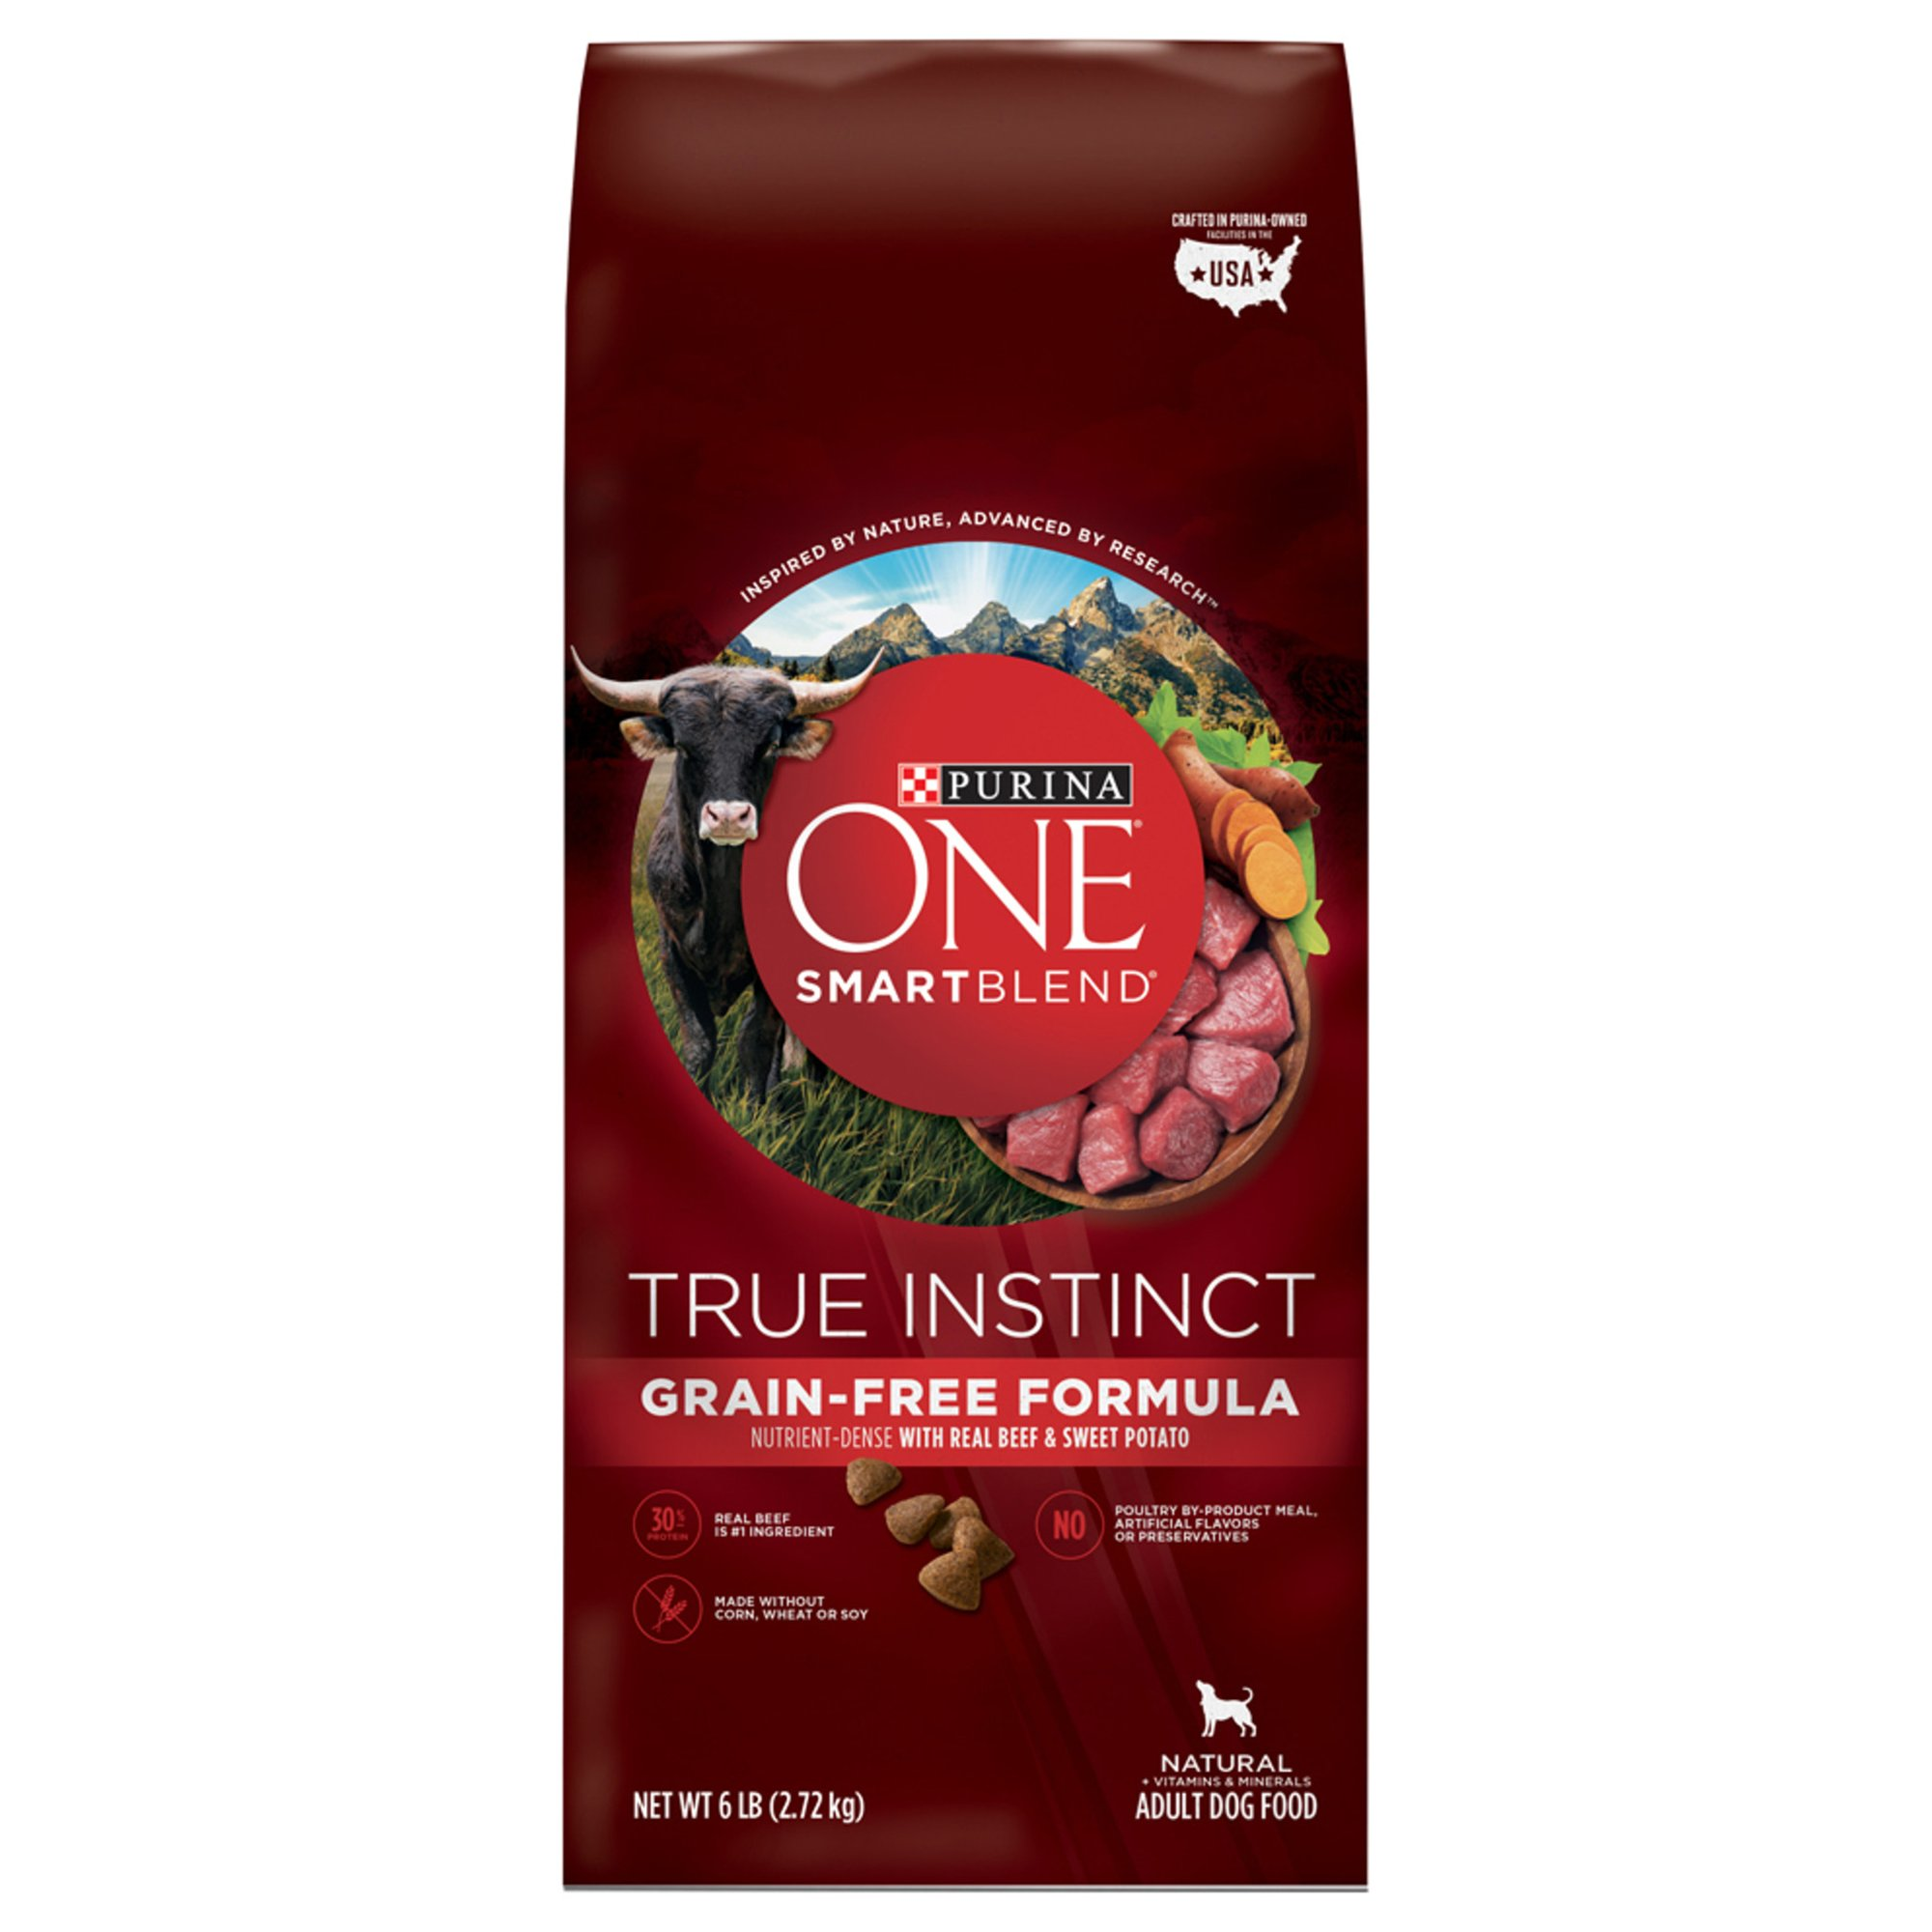 Purina ONE True Instinct Natural Grain Free Formula with Real Beef